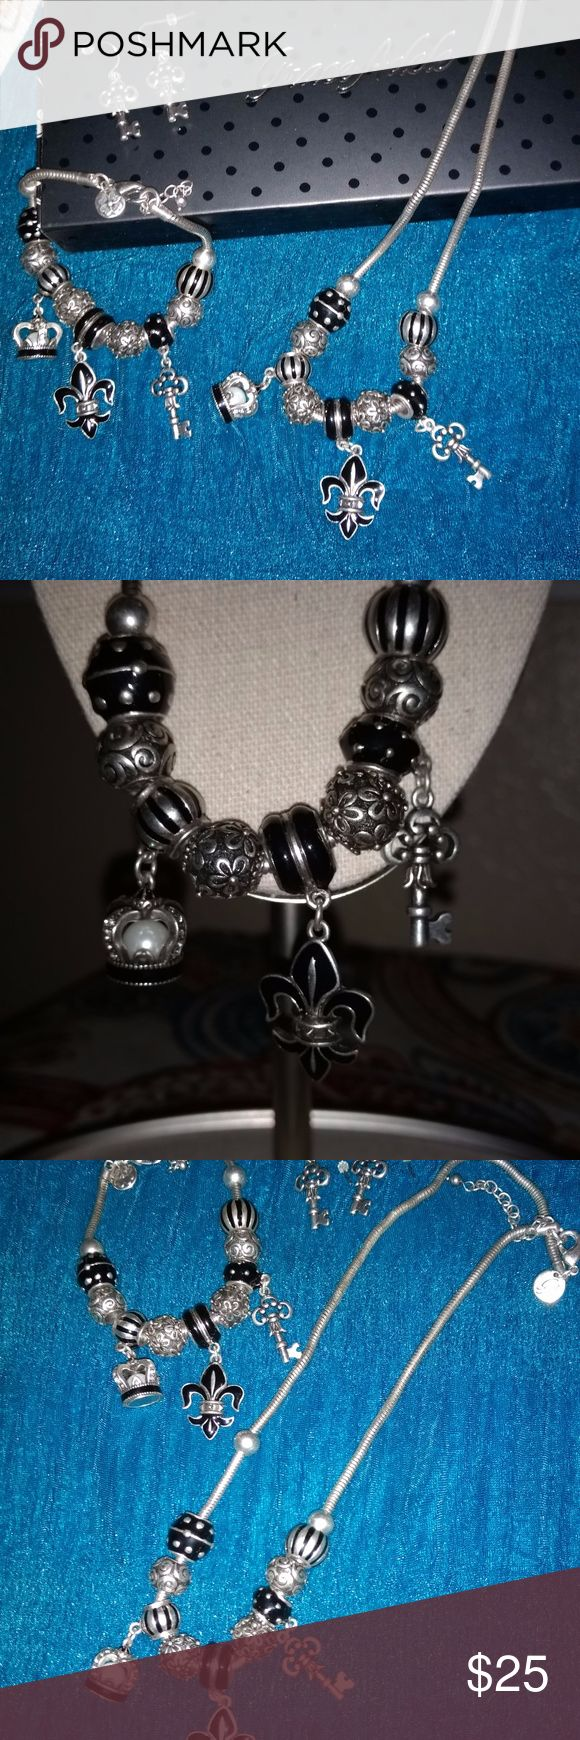 Grace Adele 3 Piece Set Grace Adele 3 piece jewelry set.  Necklace, bracelet and earrings.  Fleur de lis, crown and key charms with coordinating beads.  Black and Silver,  Earrings are keys.  Never worn. Grace Adele Jewelry Necklaces